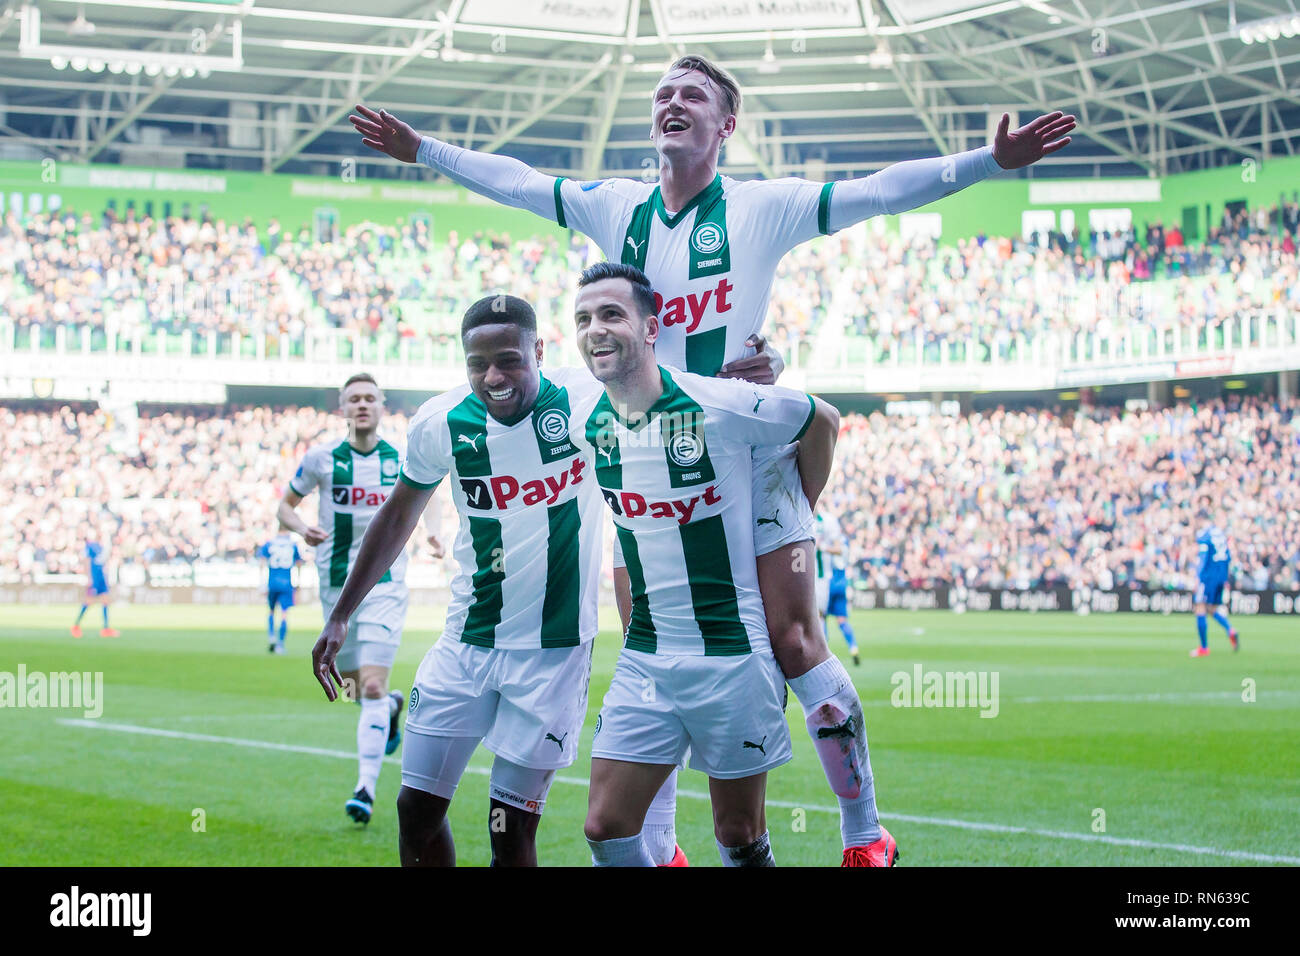 Thomas Bruns Of Fc Groningen High Resolution Stock Photography And Images Alamy